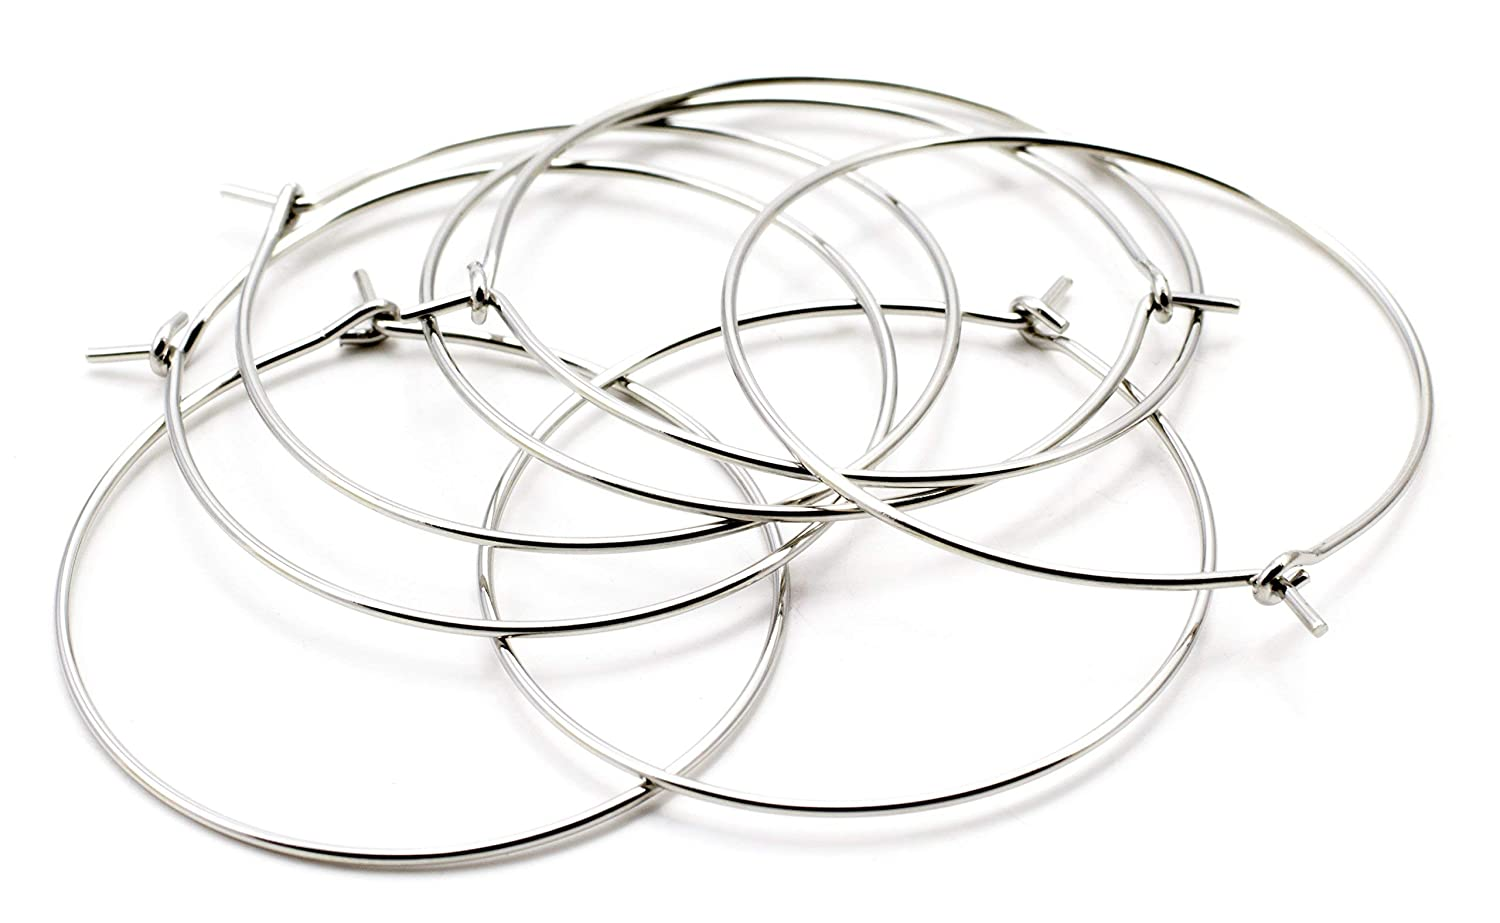 22pc Cousin DIY 30mm Stainless Steel Earring Hoop